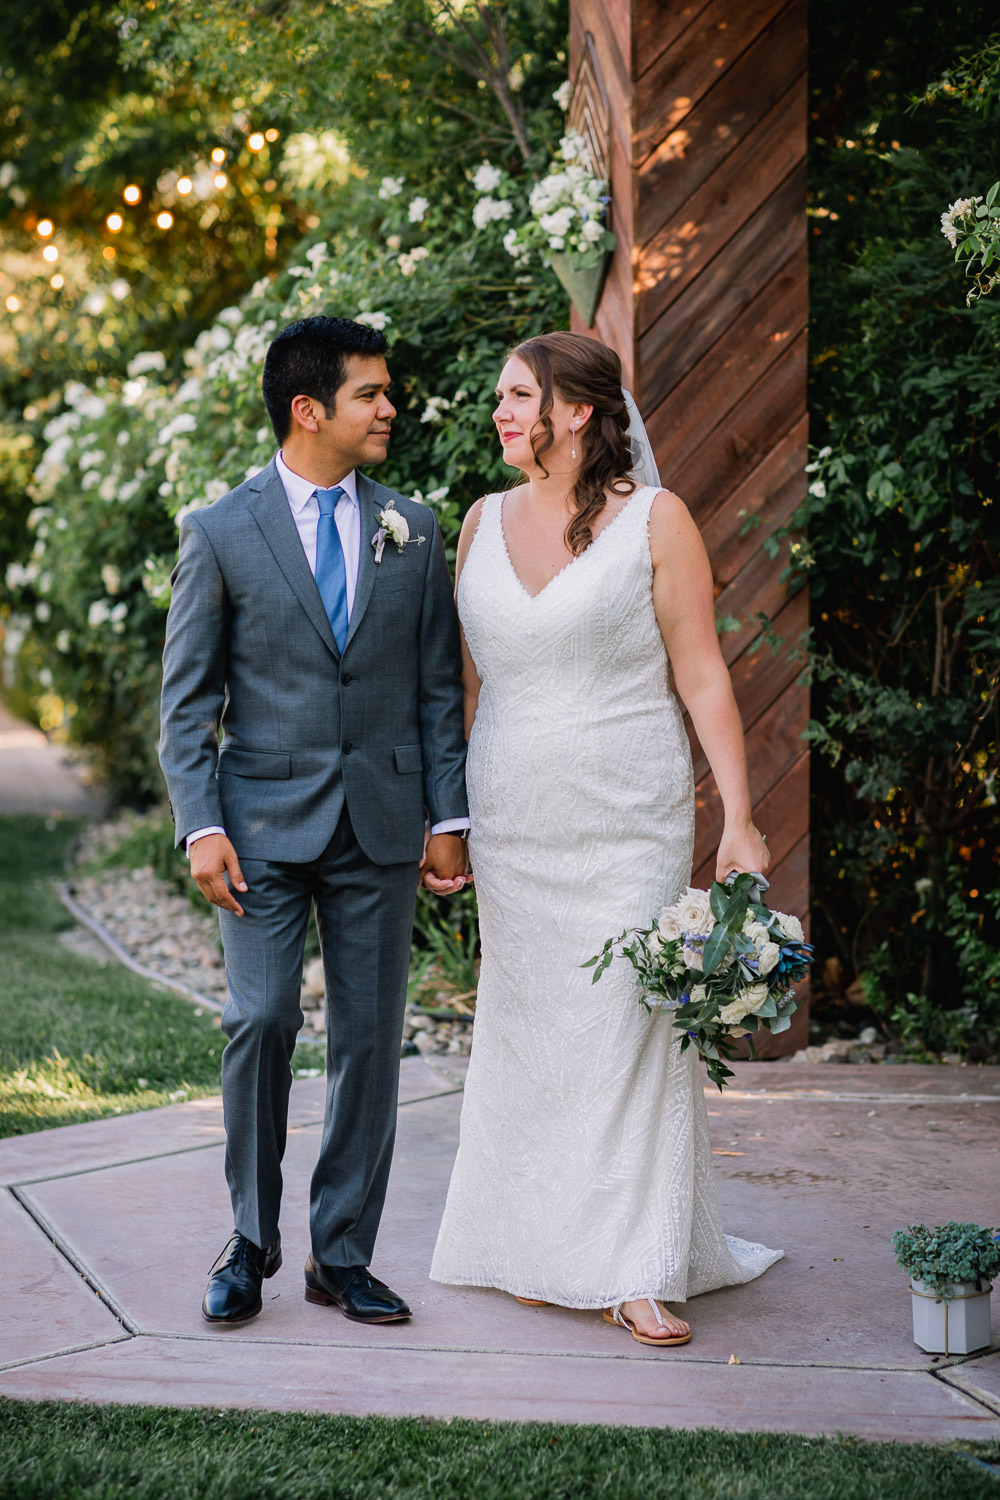 Best-Paso-Robles-California-Wedding-Photographer-249.jpg